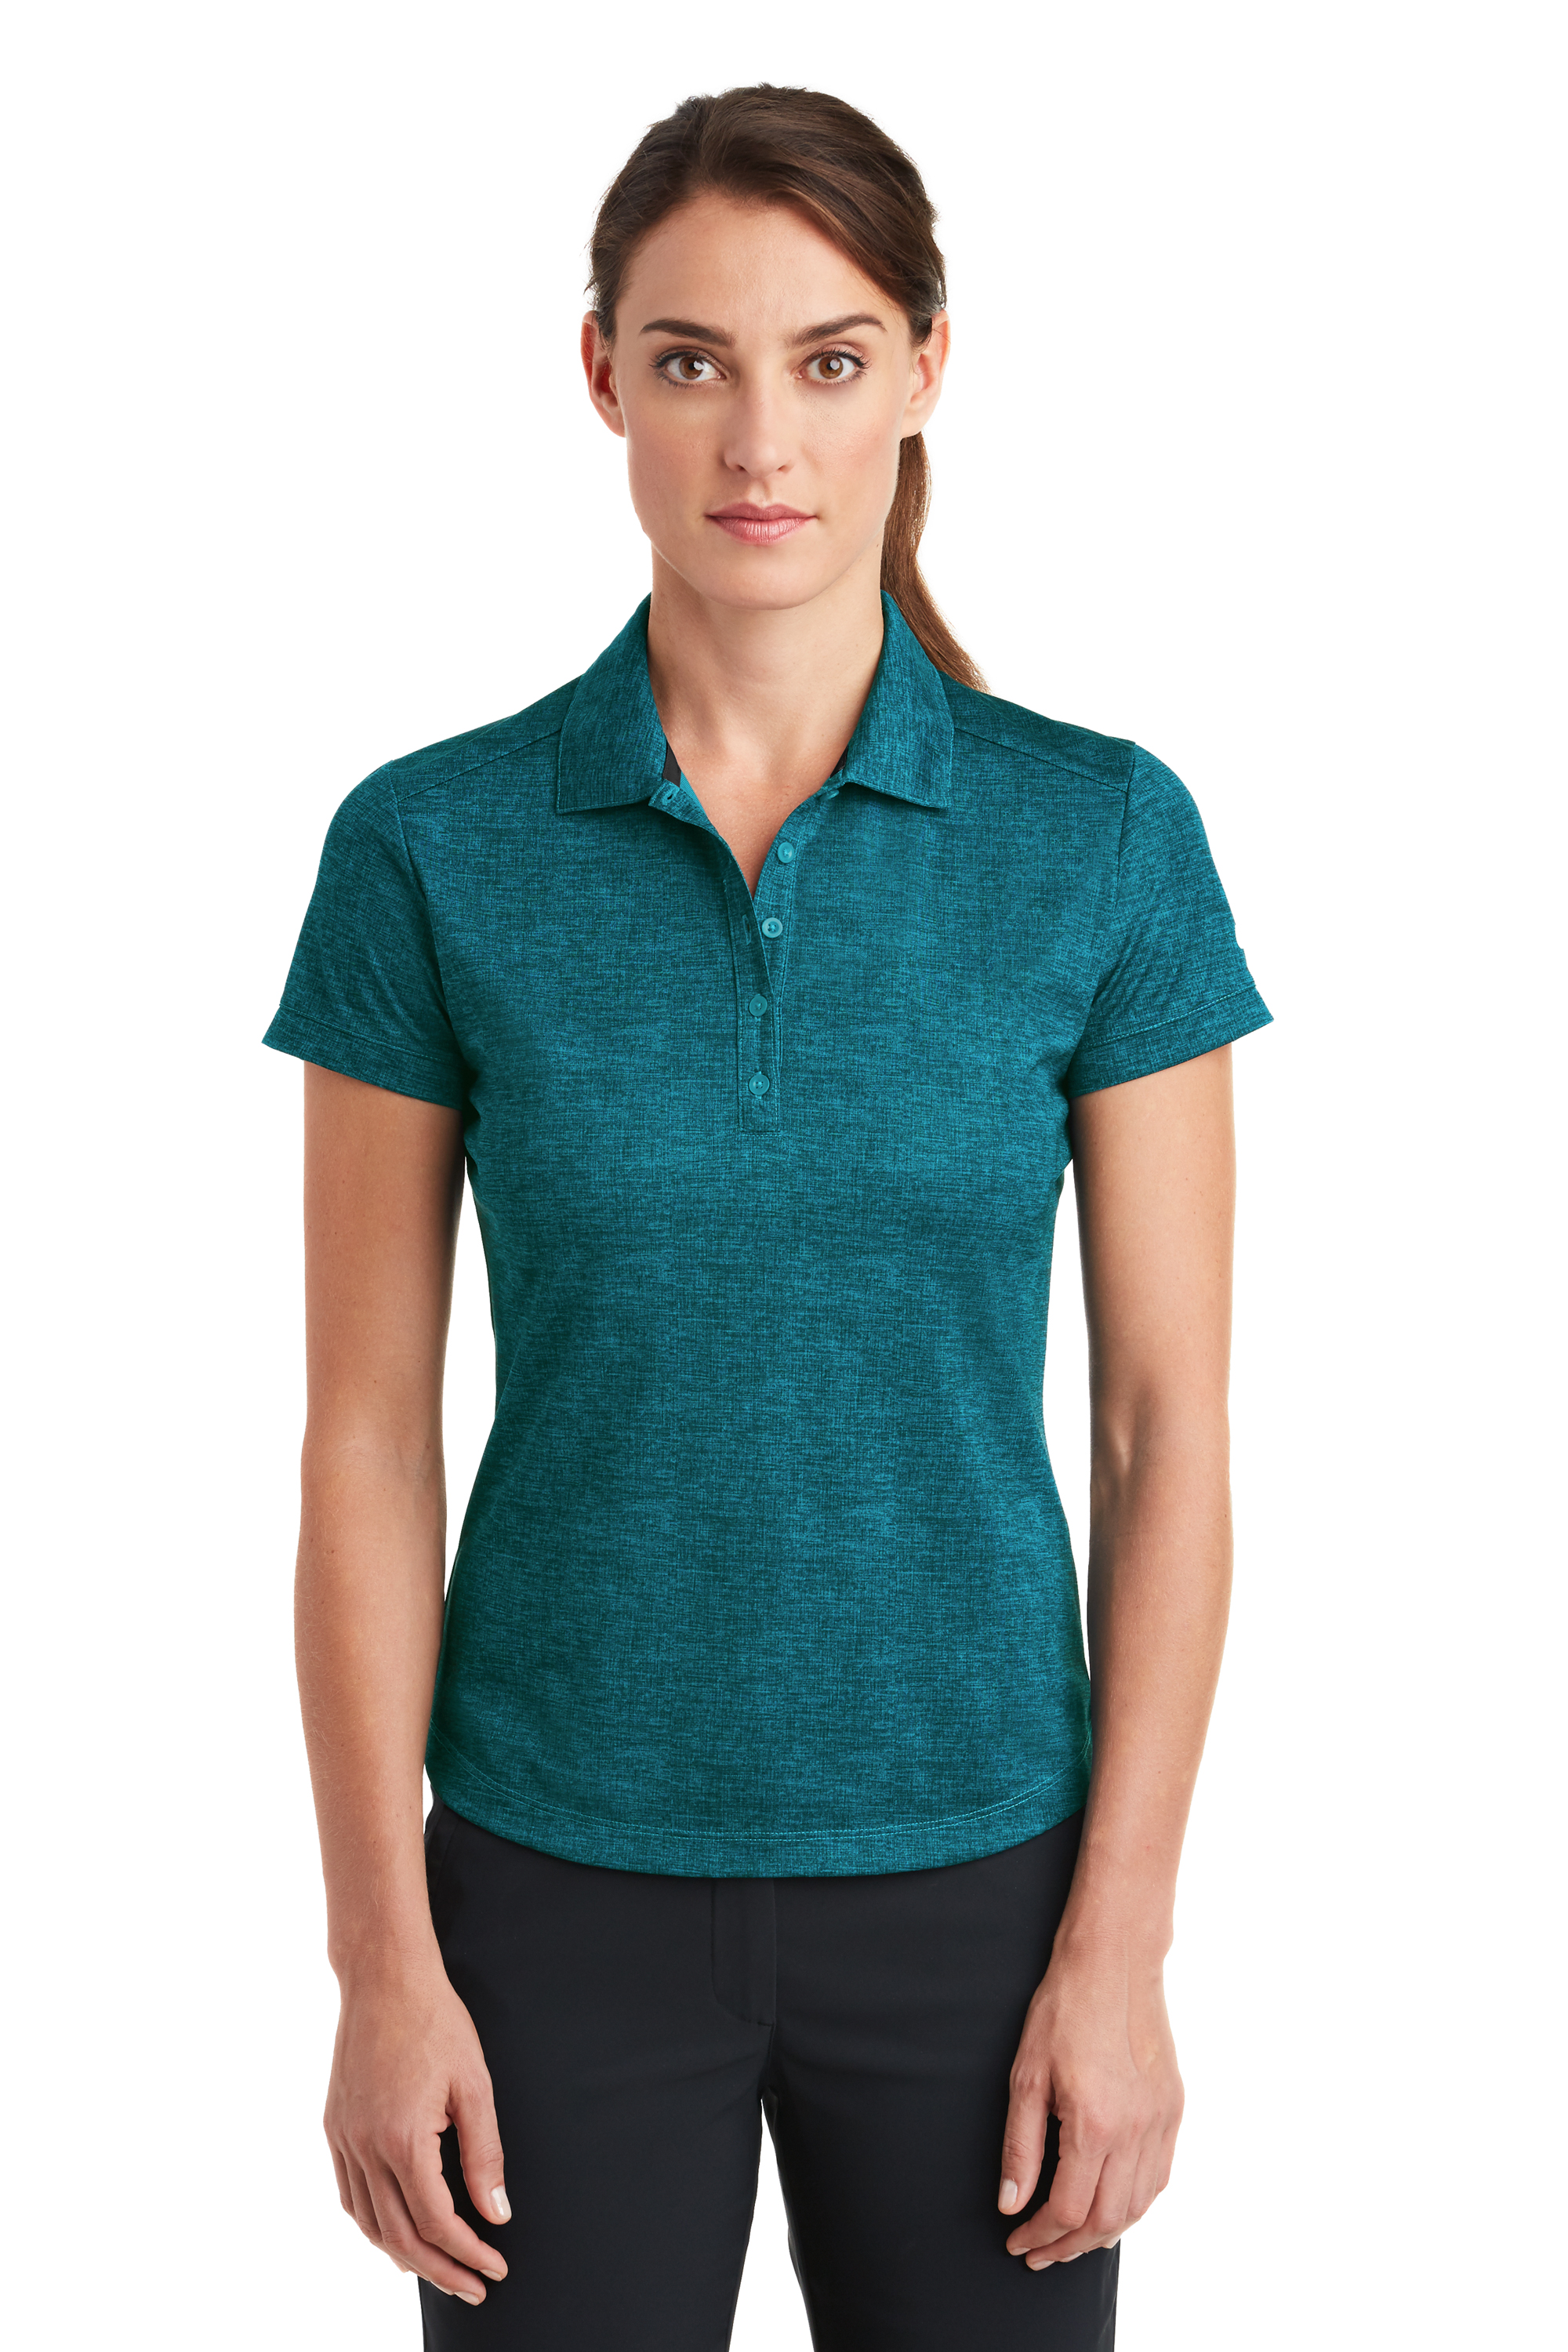 d6f5dff1db206 Nike Golf Women's Dri-FIT Crosshatch Polo. 838961.